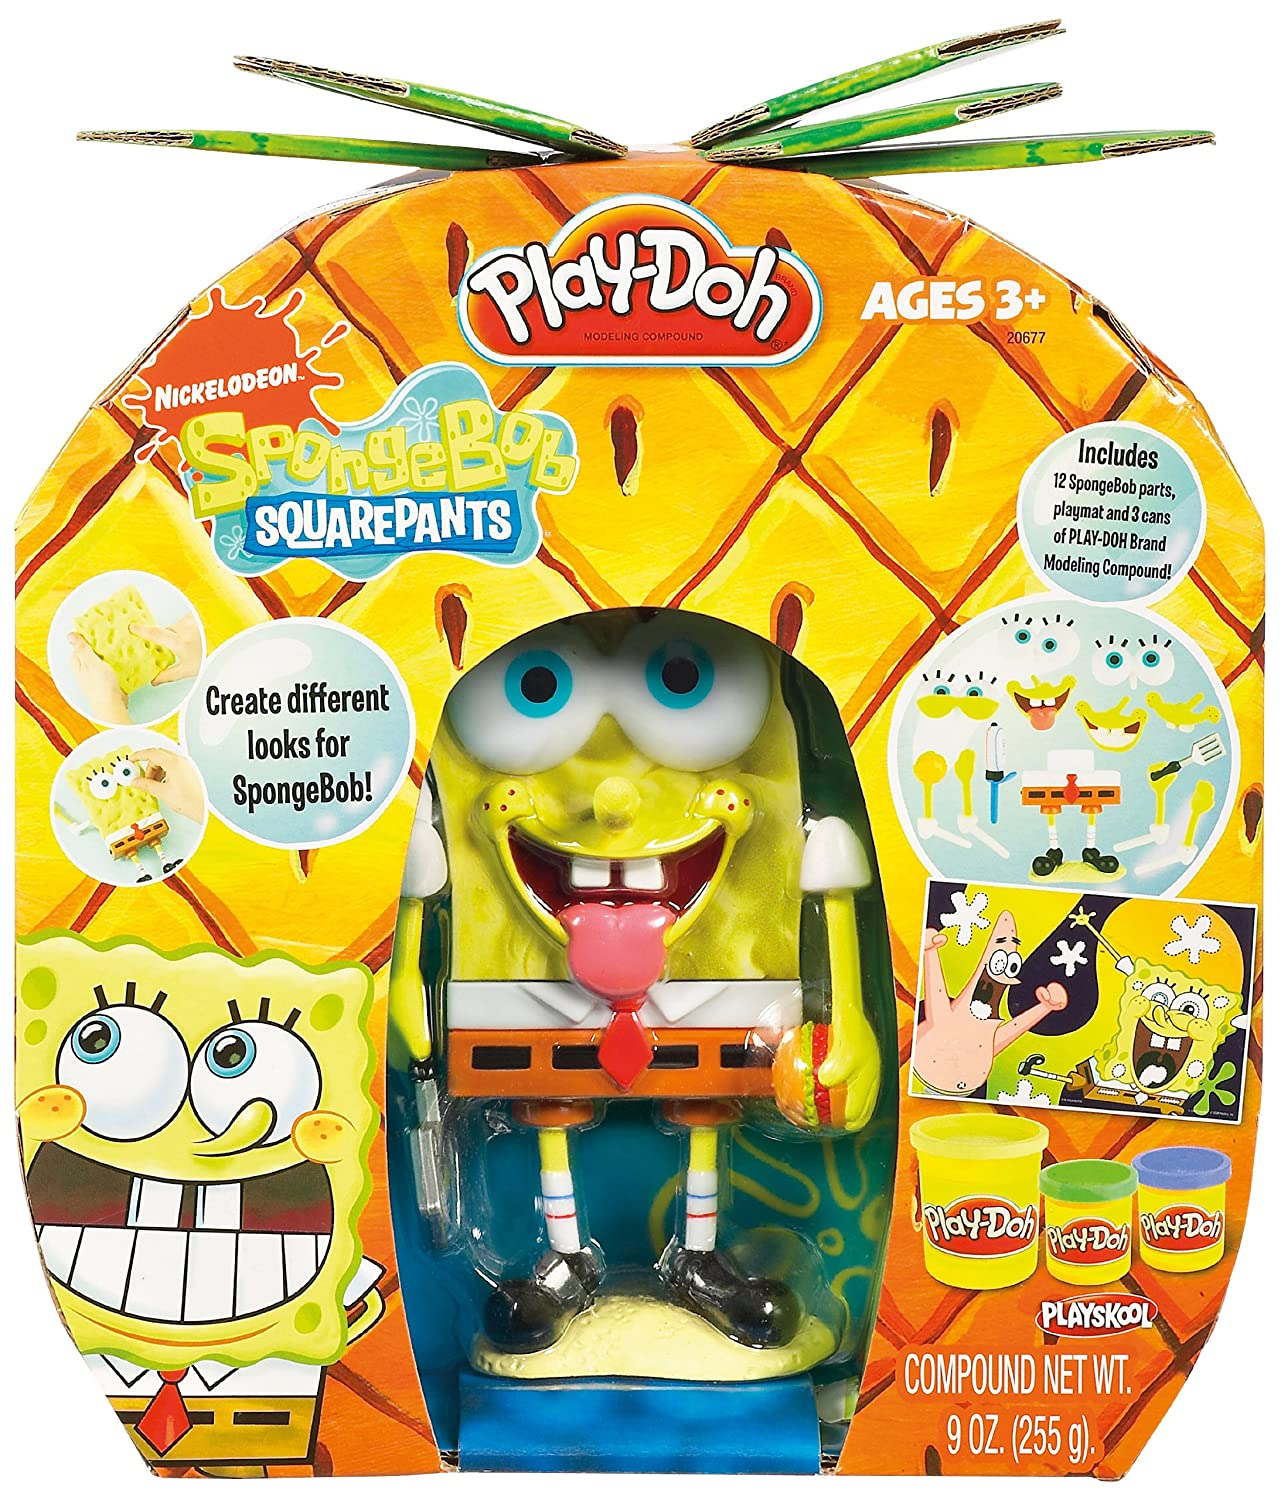 Rare ficial Nickelodeon Hasbro SpongeBob Squarepants Mix & Match